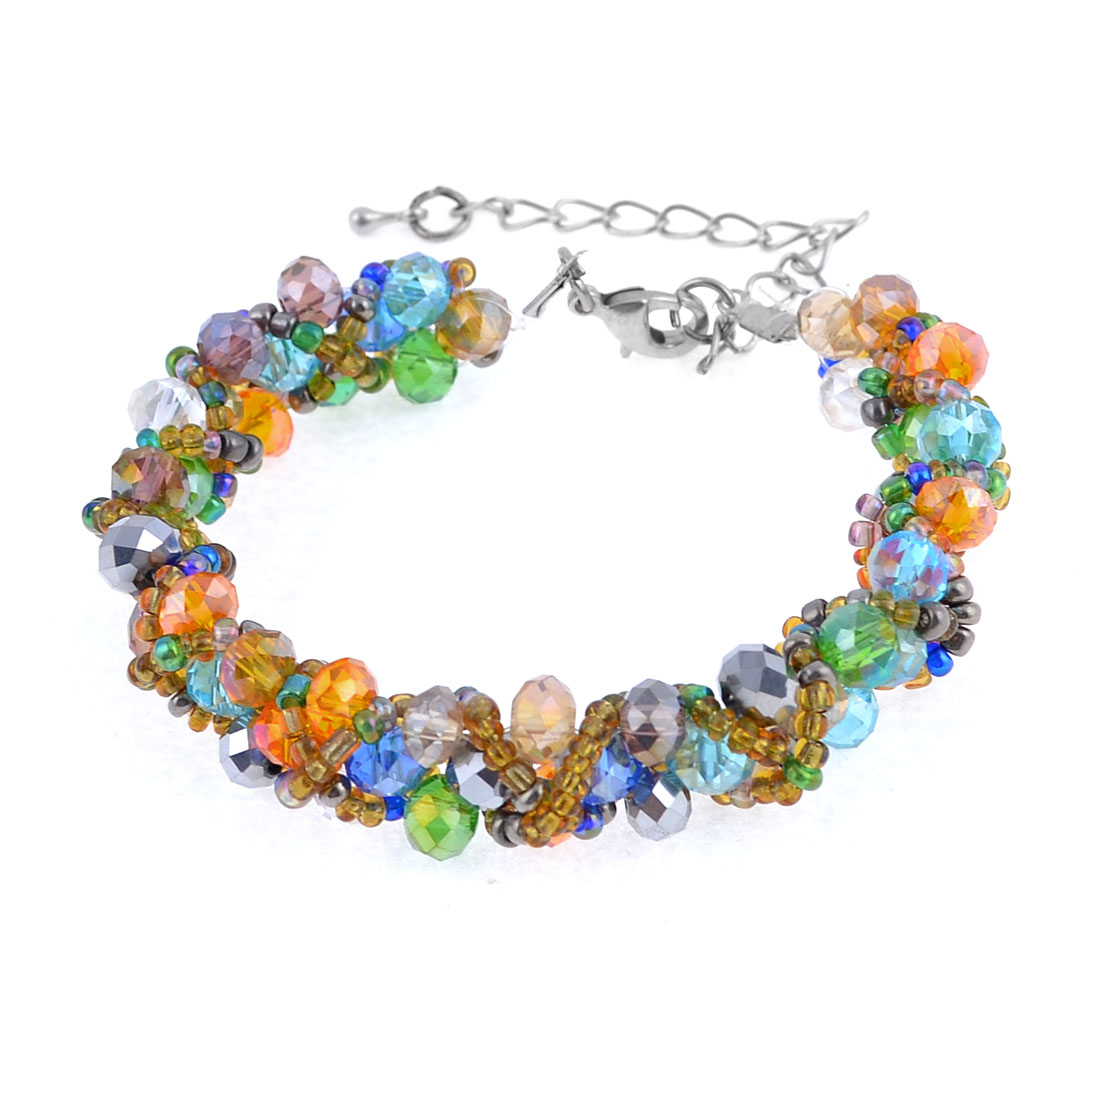 Adjustable Braided Multicolors Plastic Crystal Wristband Bracelet